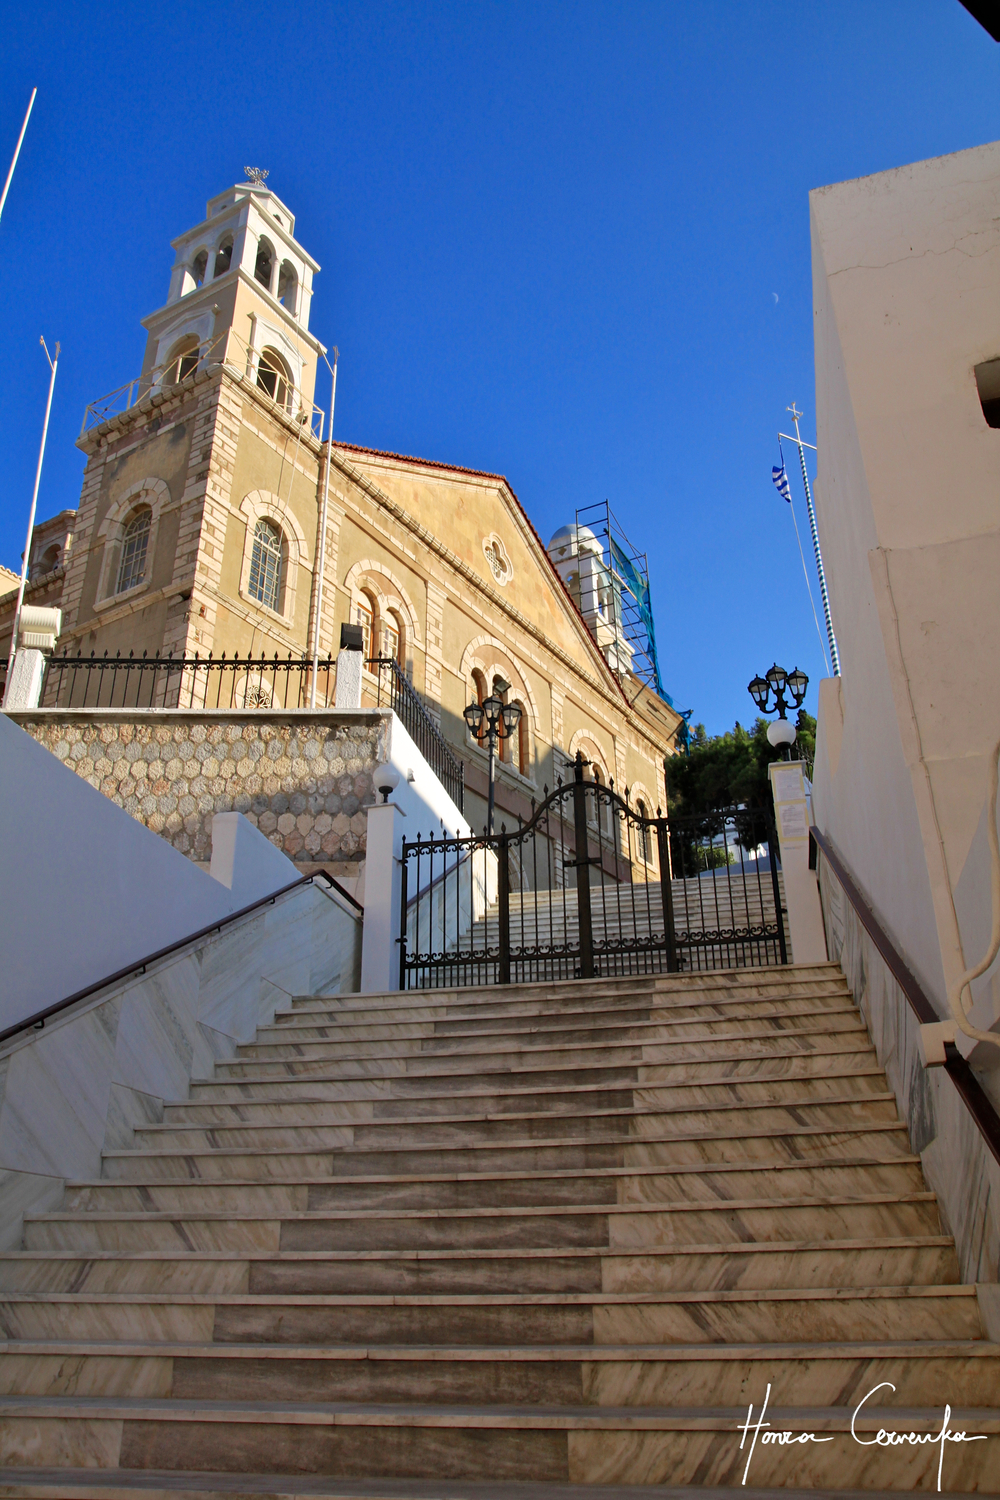 steps up to a church inside the town.